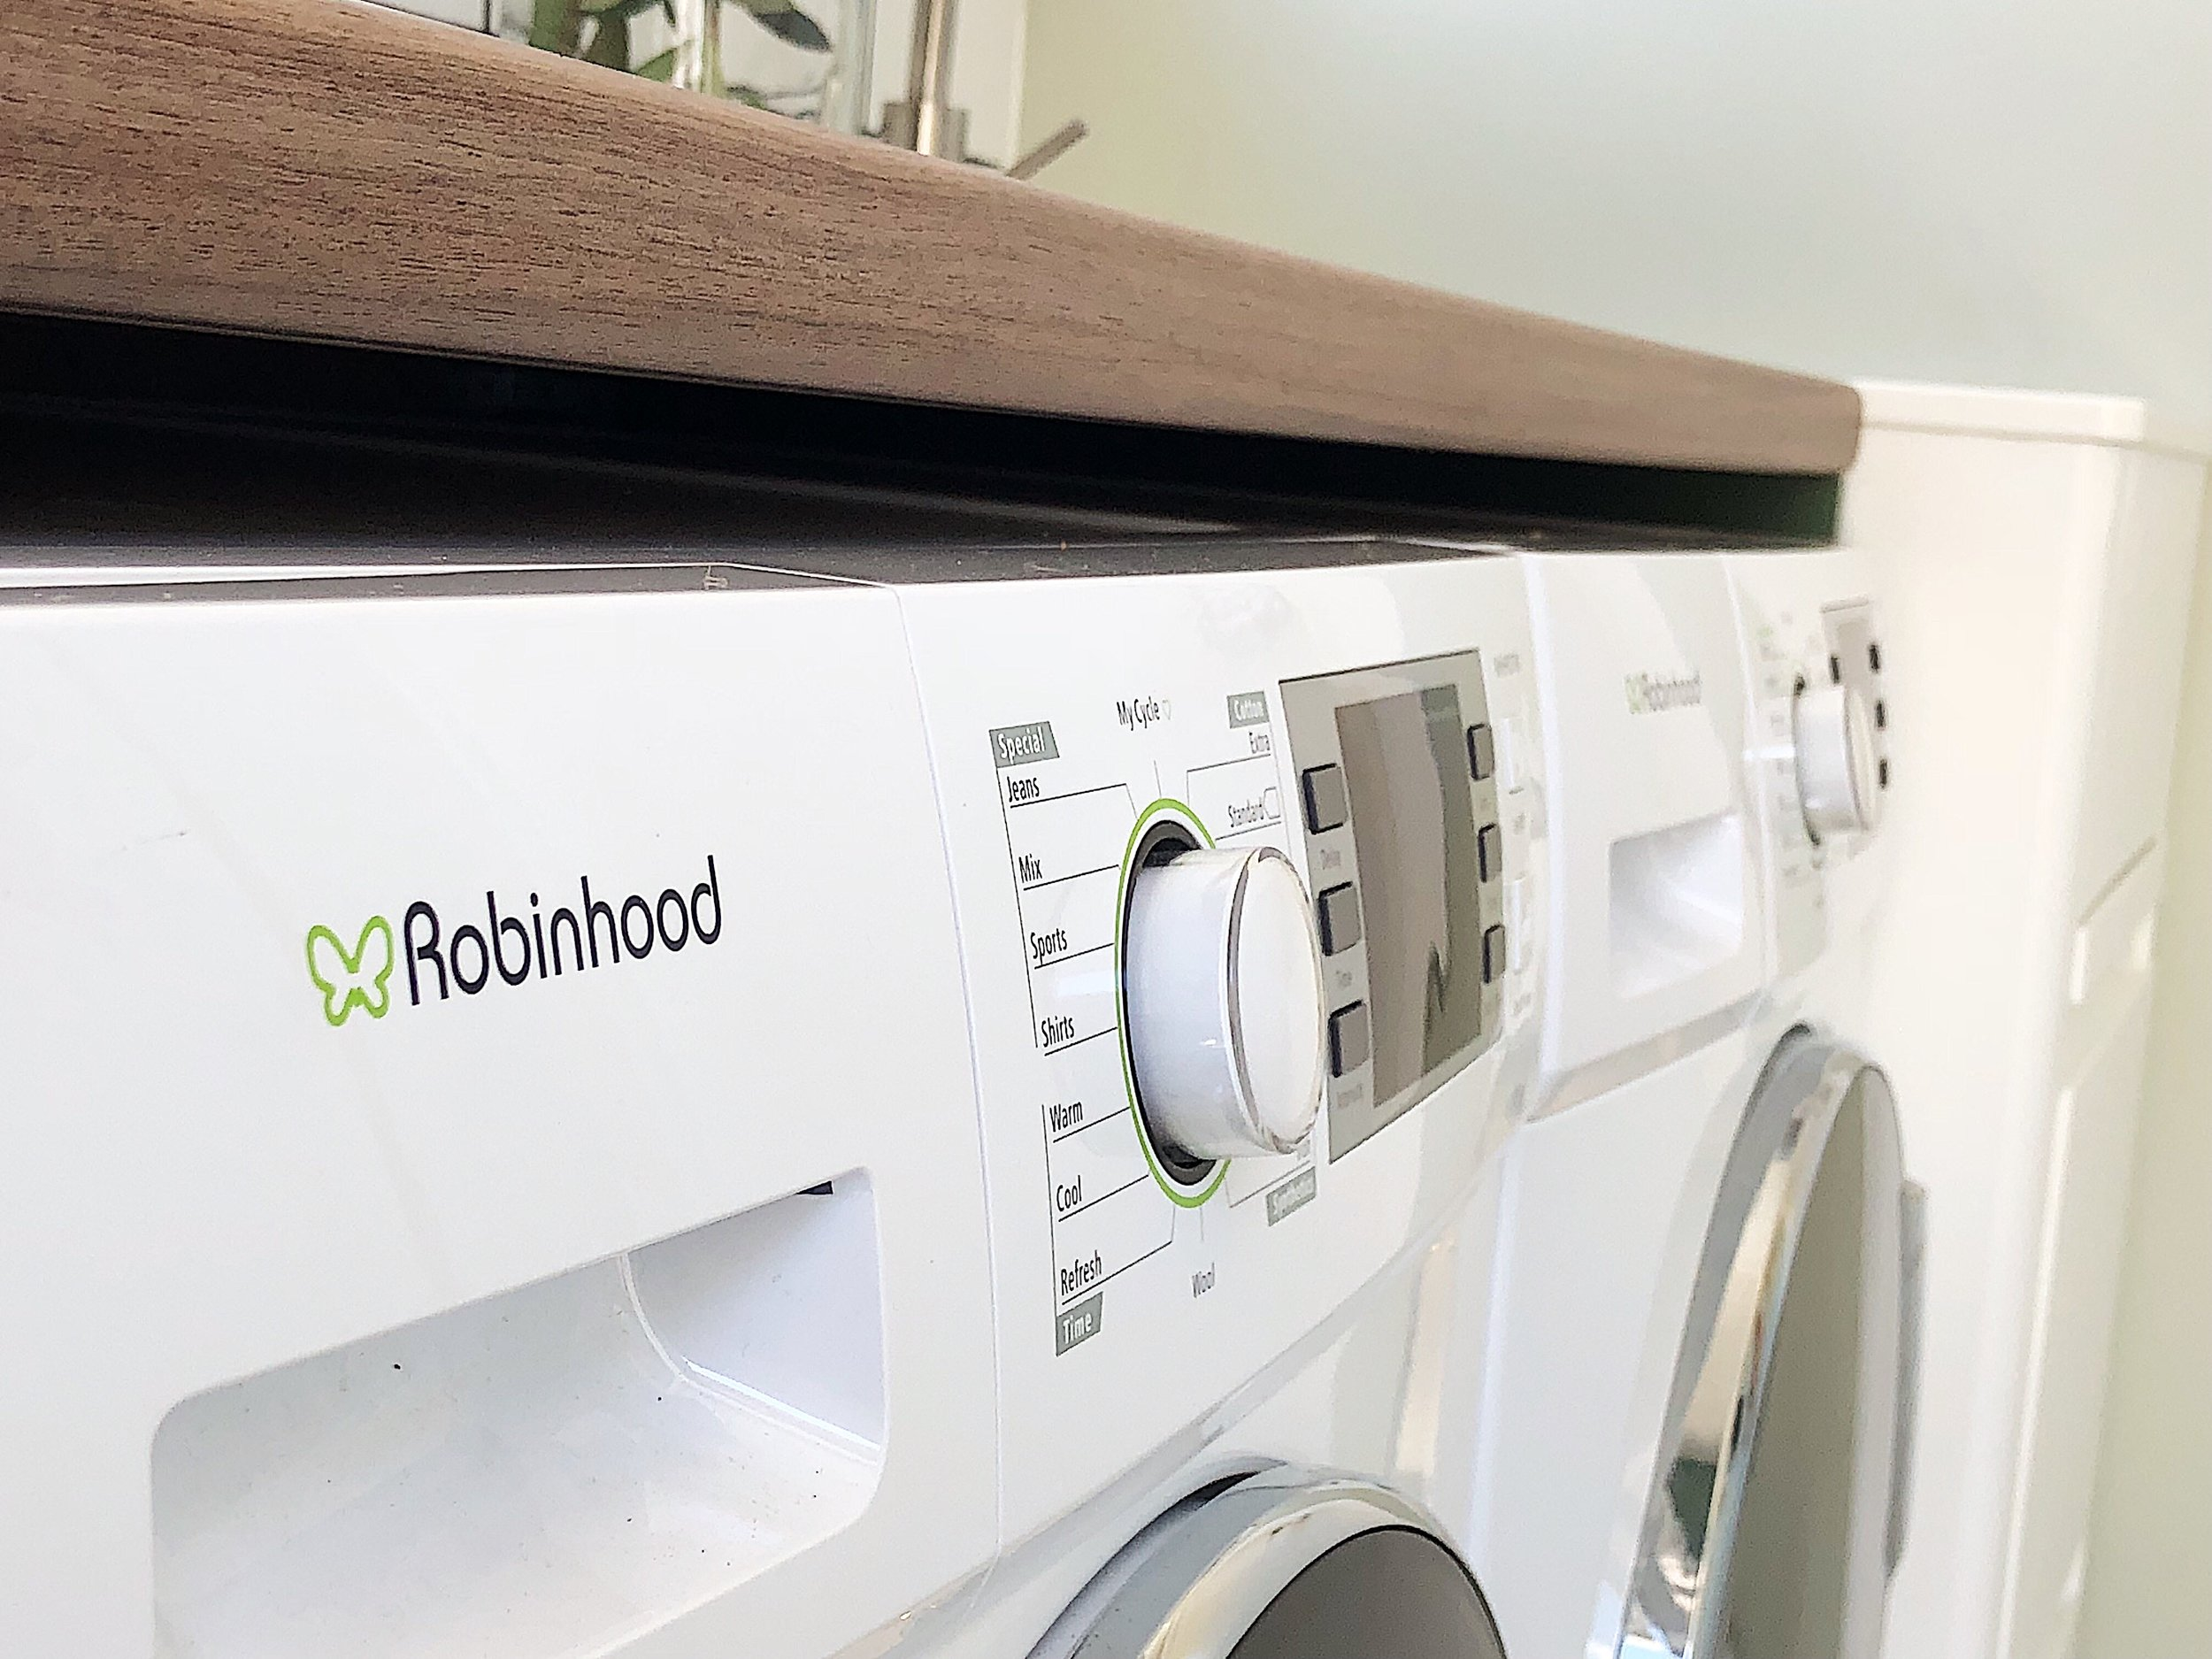 FB Final Laundry Reveal Pearson and Projects Robonhood - 6.jpg